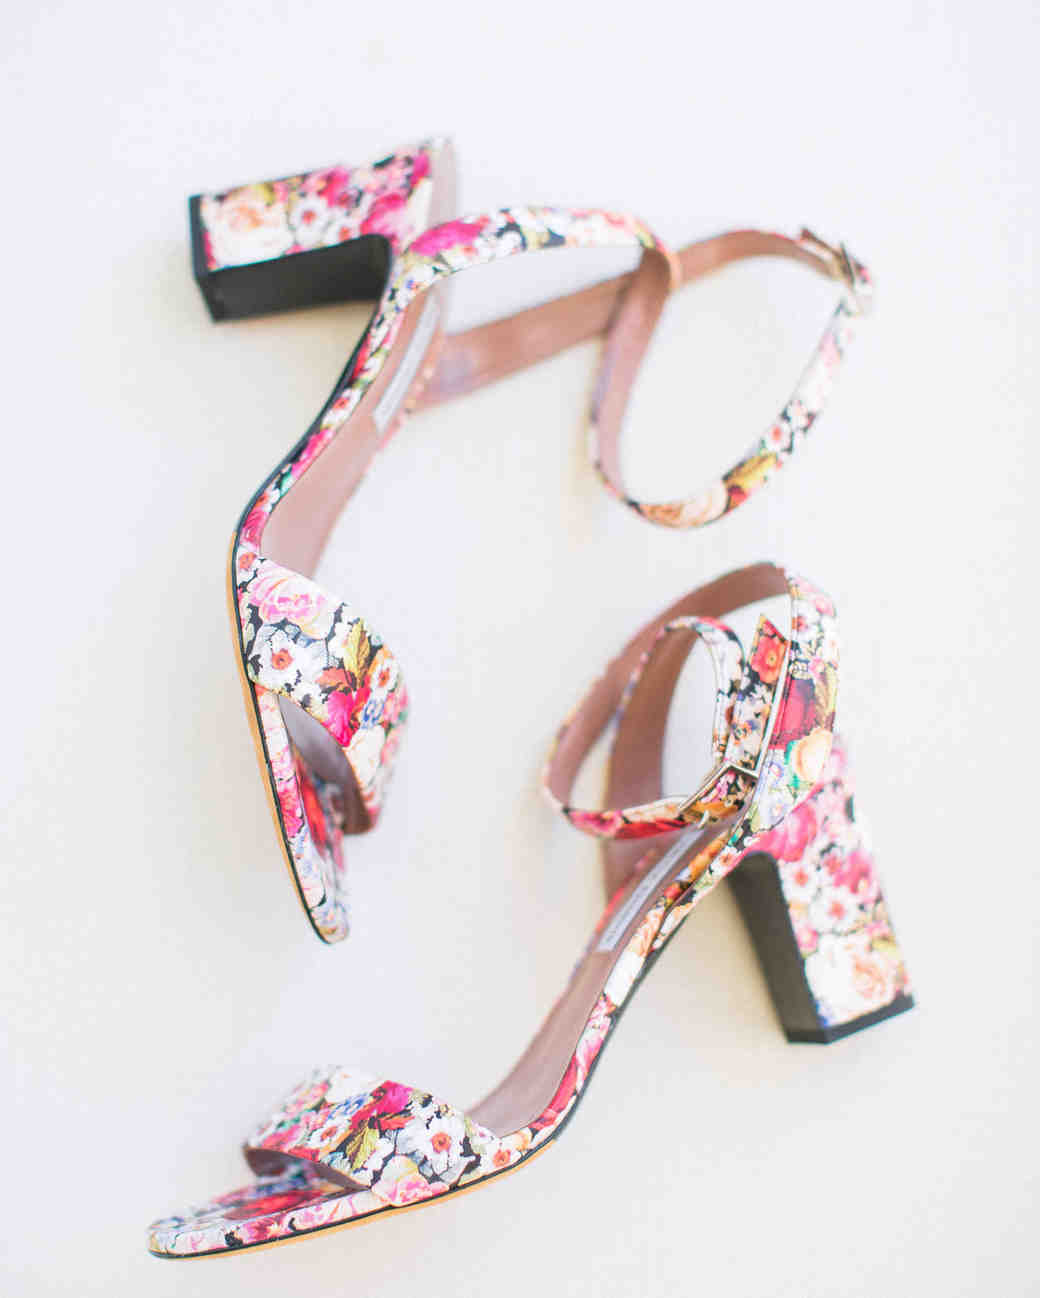 354a16a5555 25 Nontraditional Wedding Shoe Ideas from Stylish Brides